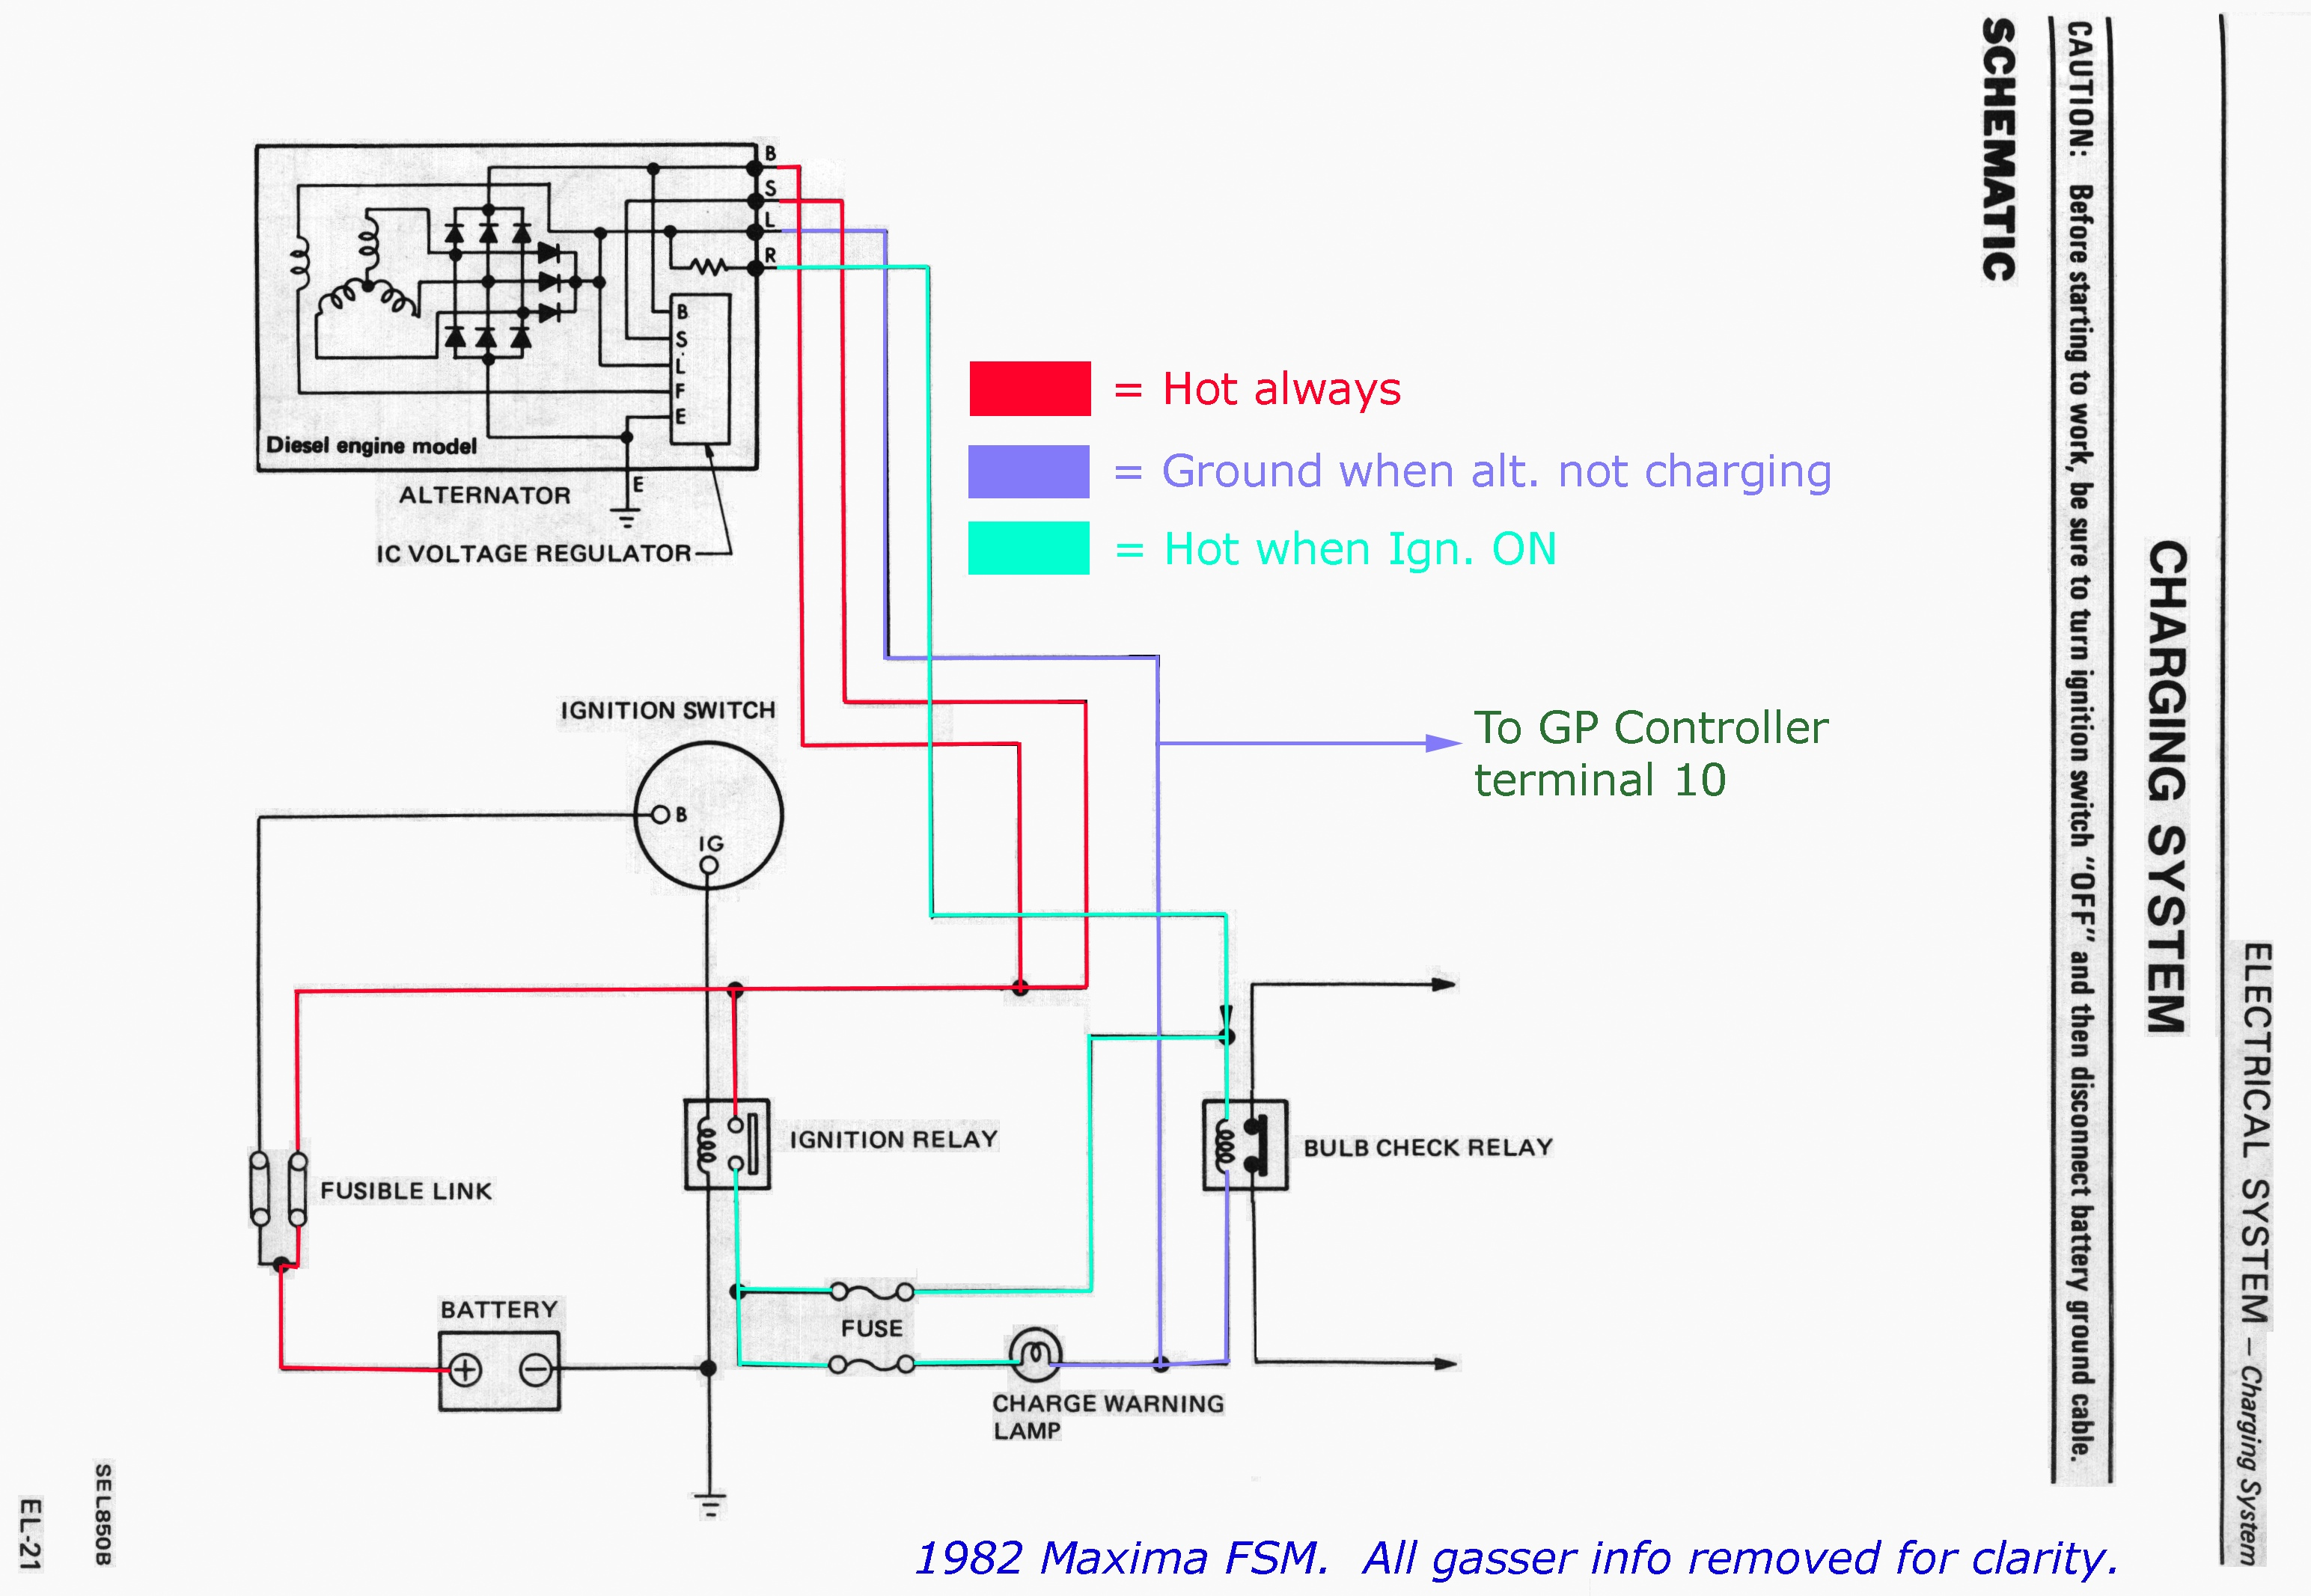 zz Elec   en uploadfiles 2007713193820601 on prestolite alternator wiring diagram